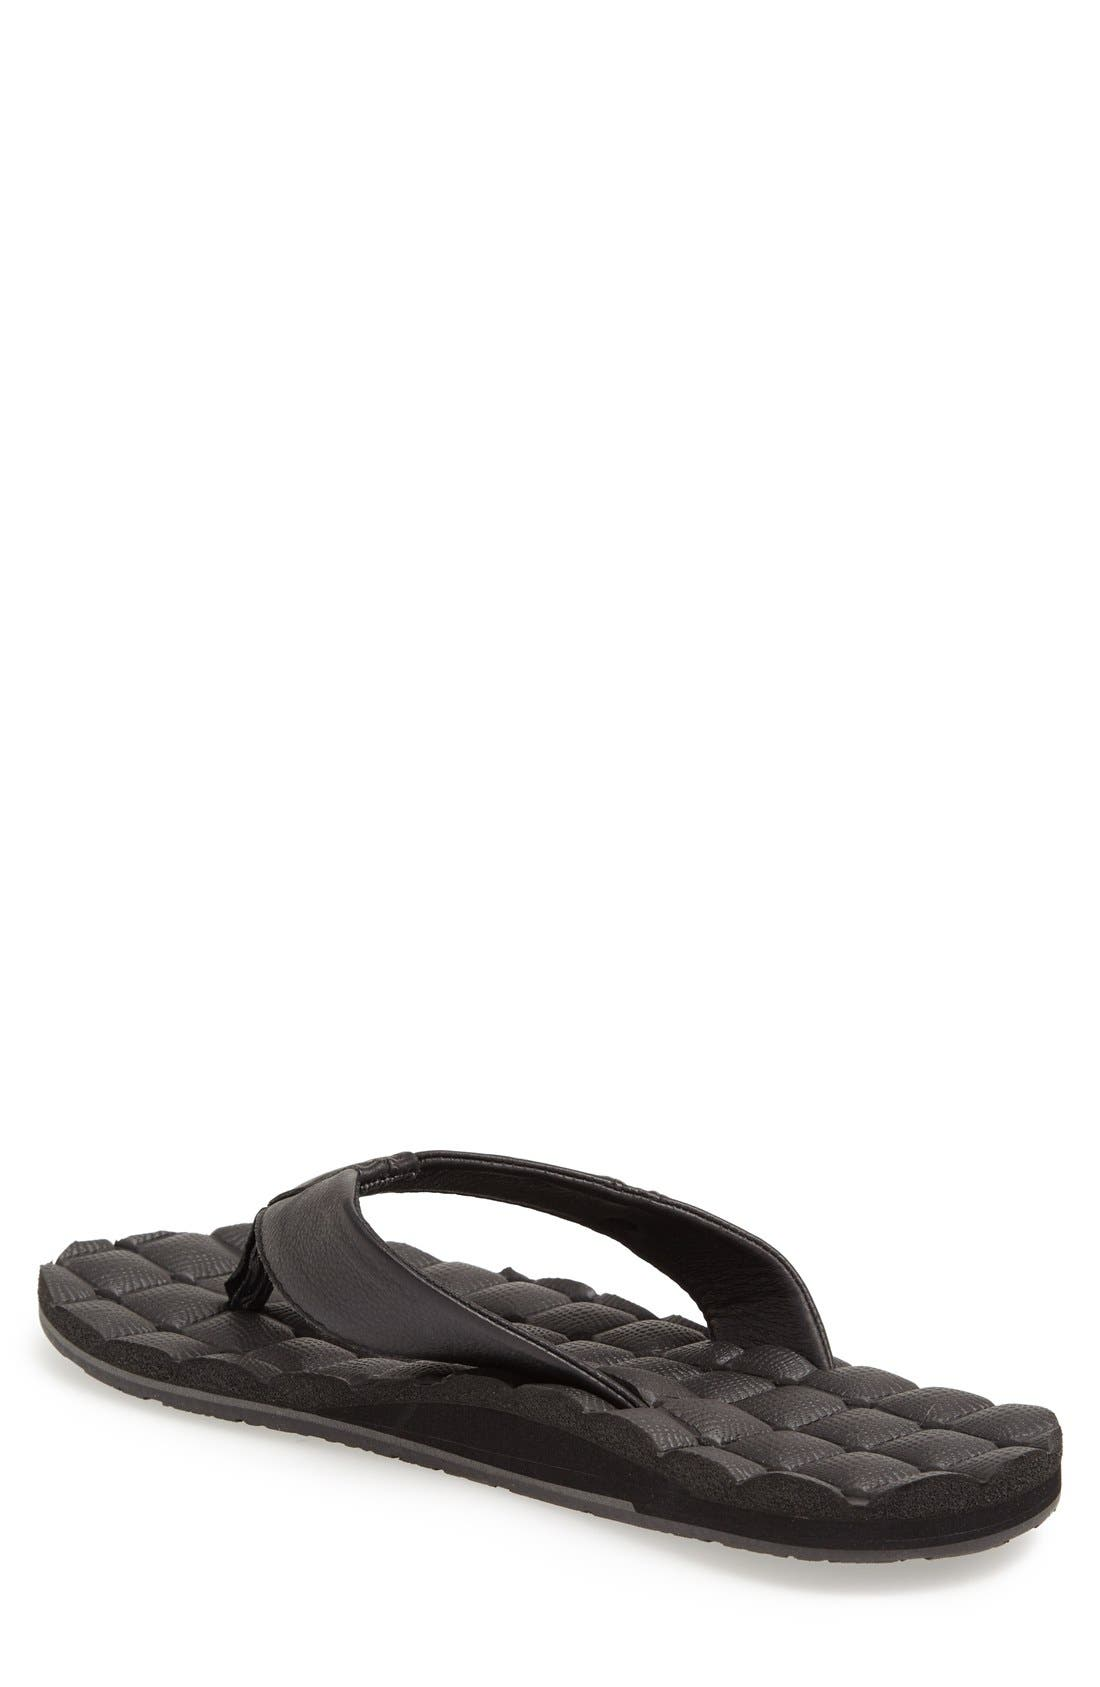 Alternate Image 2  - Volcom 'Recliner' Leather Flip Flop (Men)